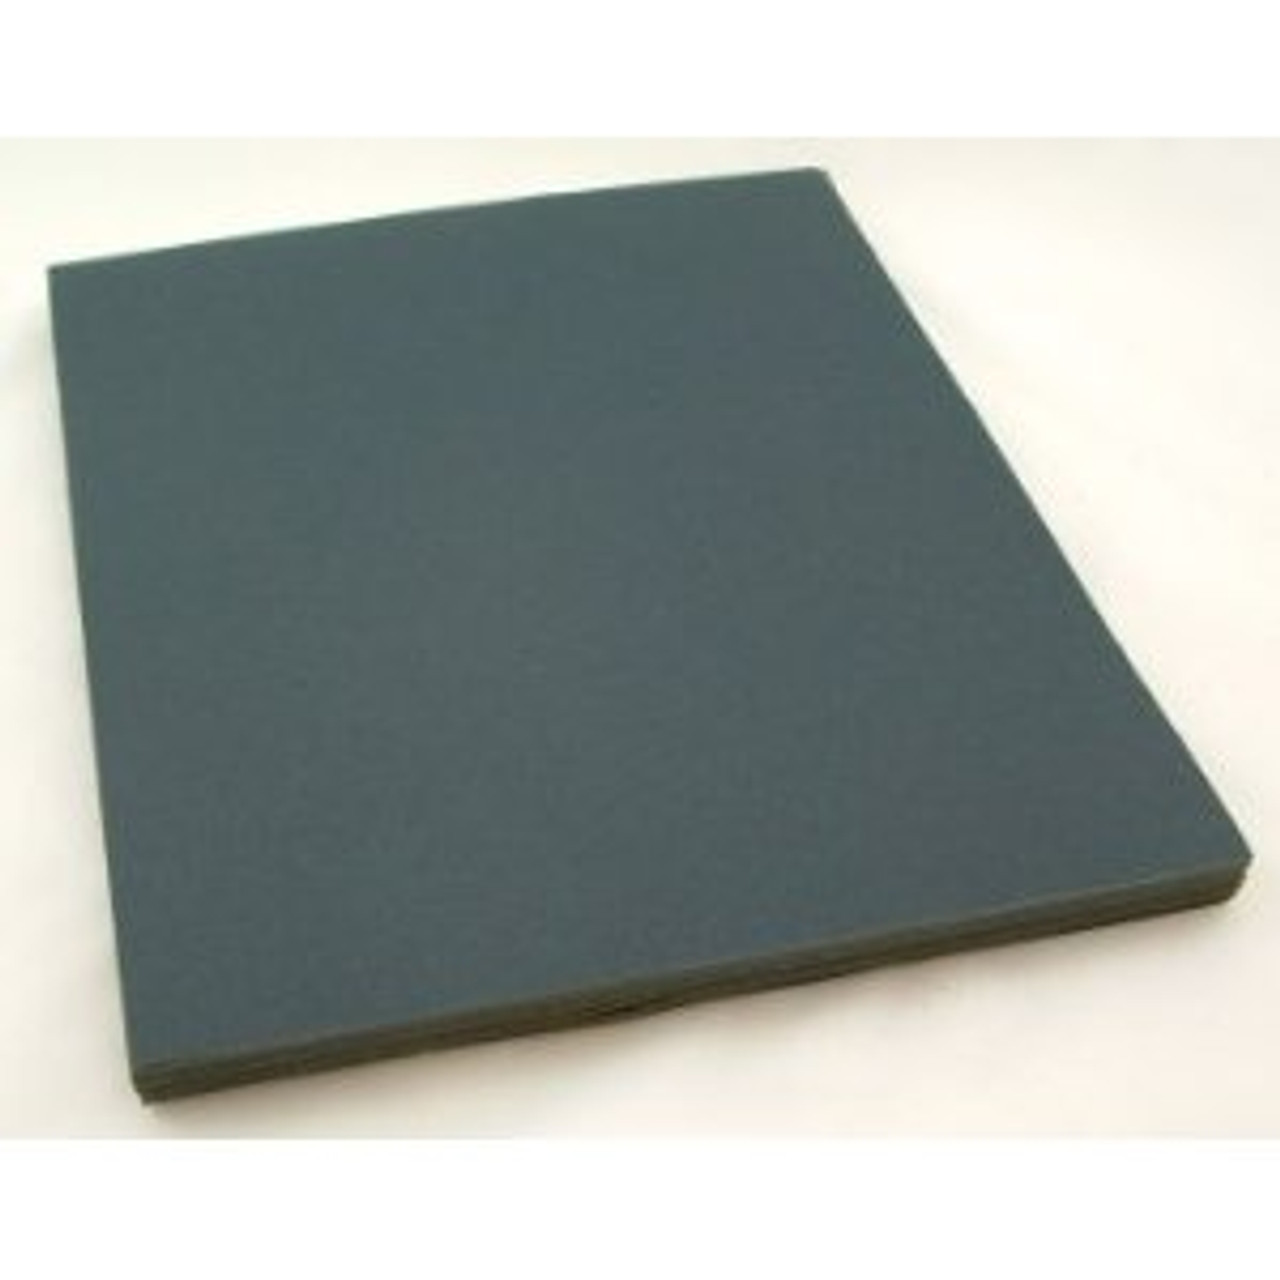 9x11 Wet/Dry SILICON CARBIDE Cabinet Paper